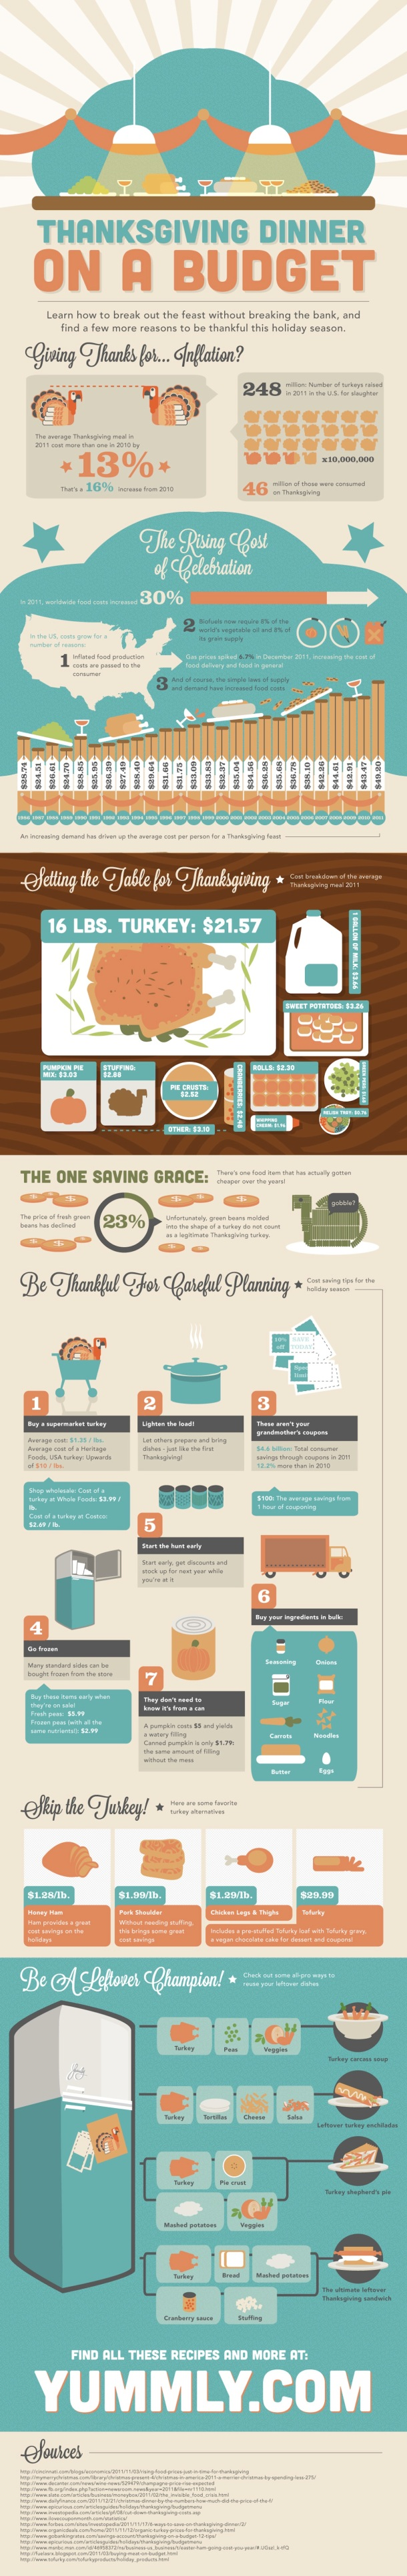 Thanksgiving Dinner on a Budget Infographic